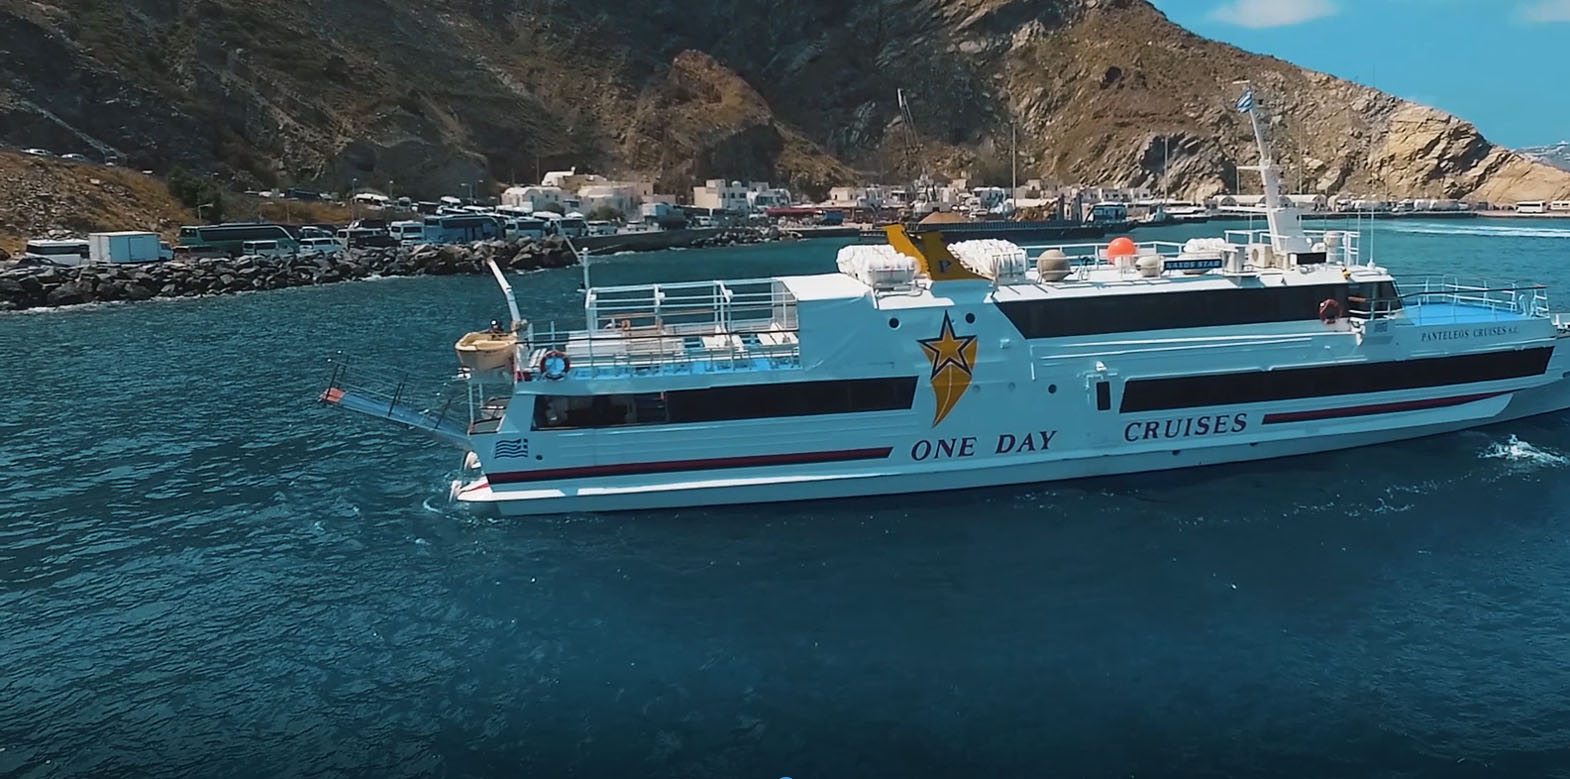 santorini daily cruise in french